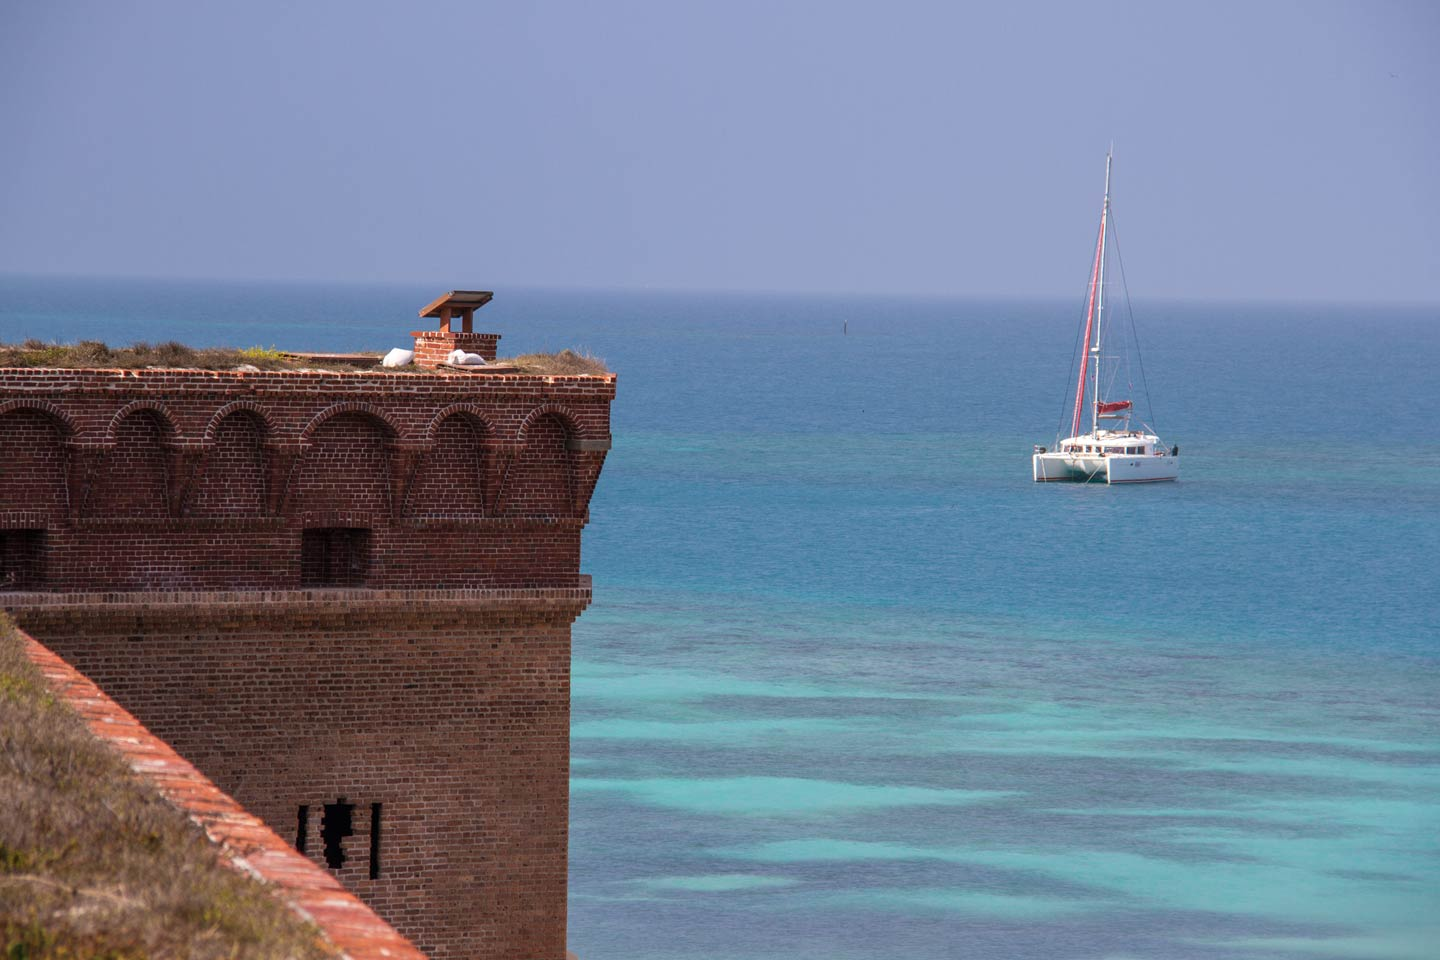 A view of a boat on the waters of Dry Tortugas from the Jefferson Fort